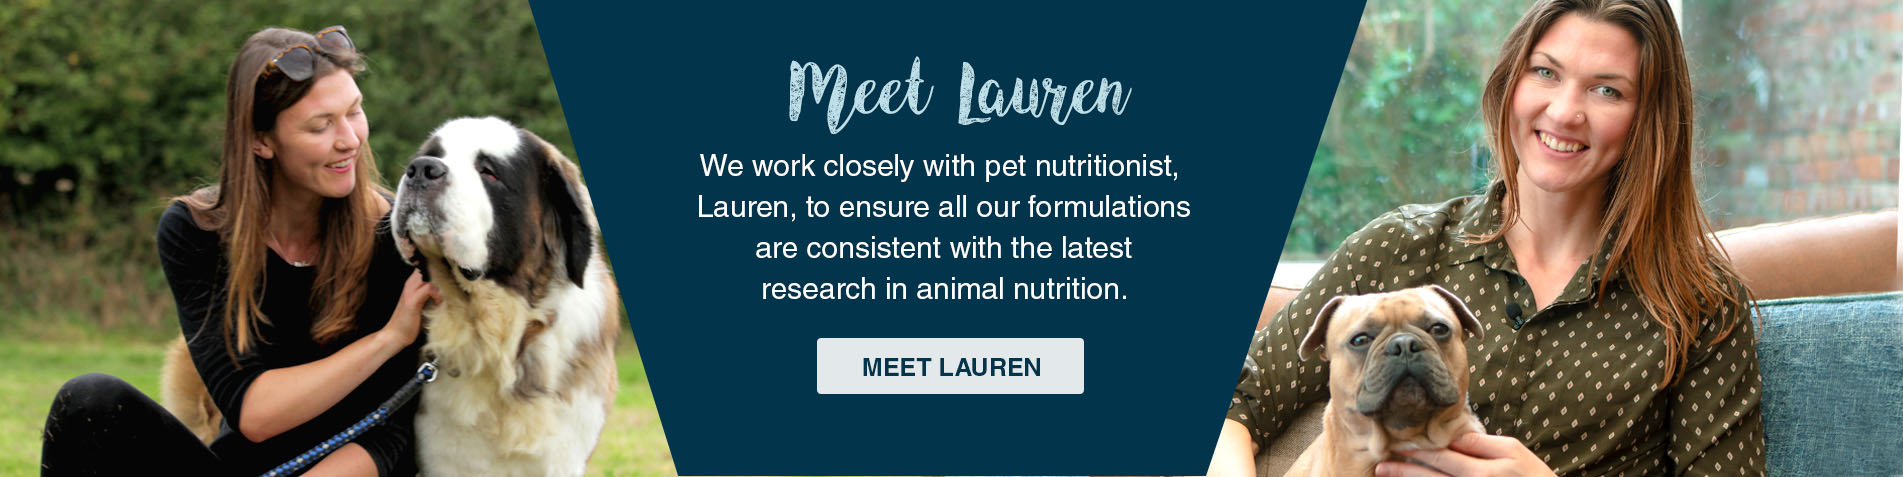 Meet Lauren, our Animal Nutritionist